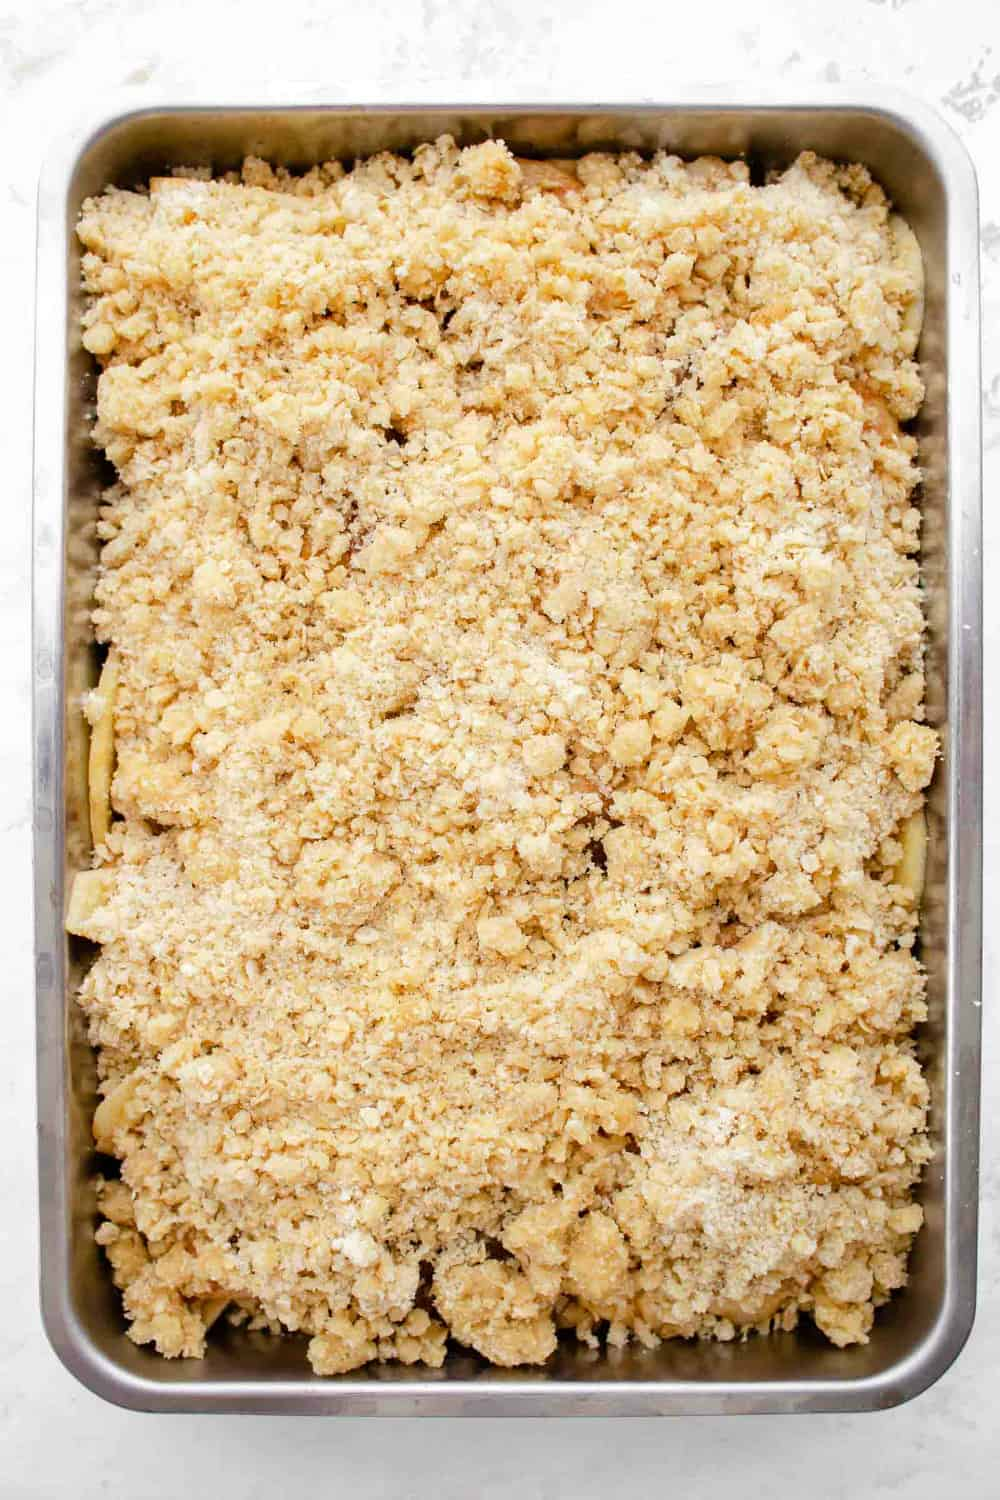 Apple crisp in a pan, ready to be baked